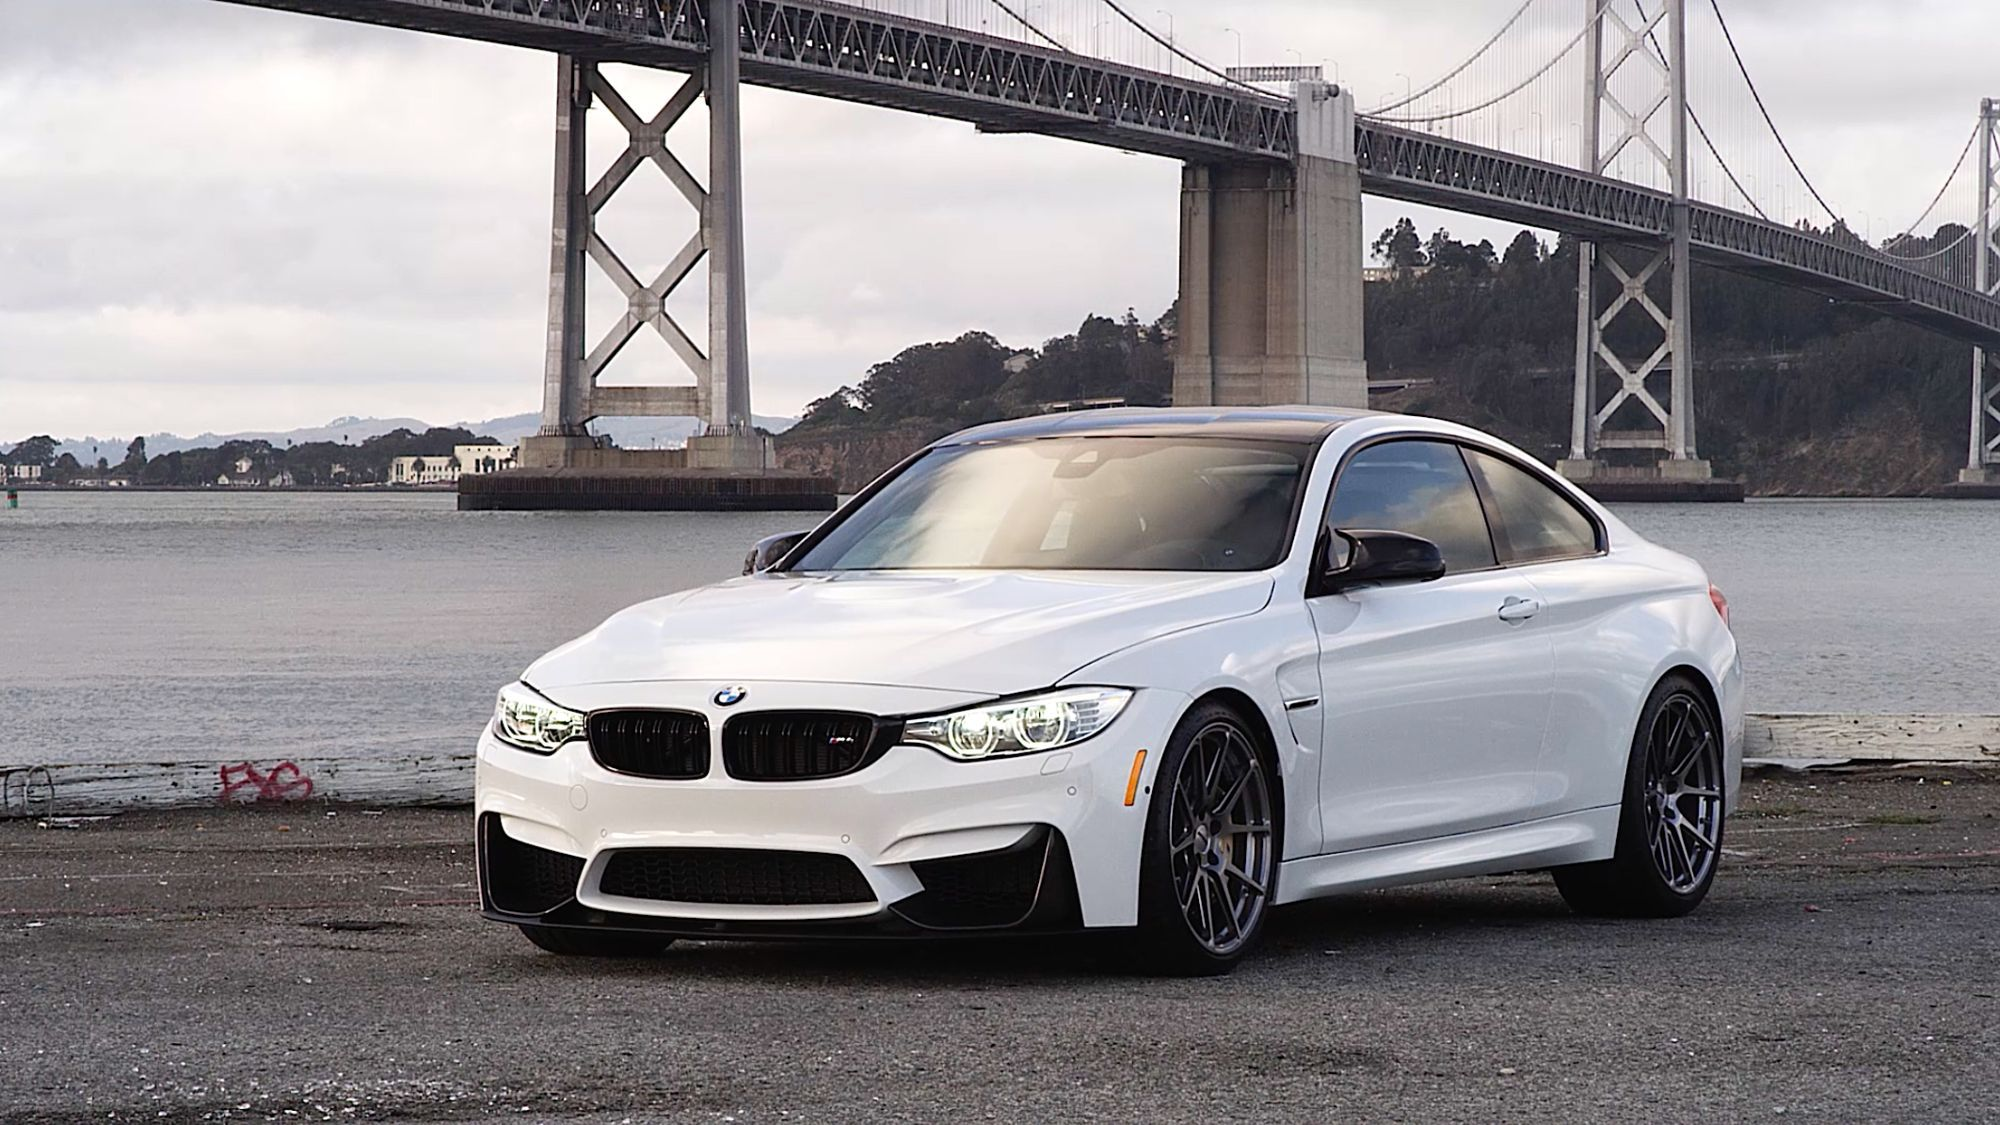 2015 BMW M4 |  BMW Car Club of America Car of Your Dreams M4 on Forgeline GA1R Wheels